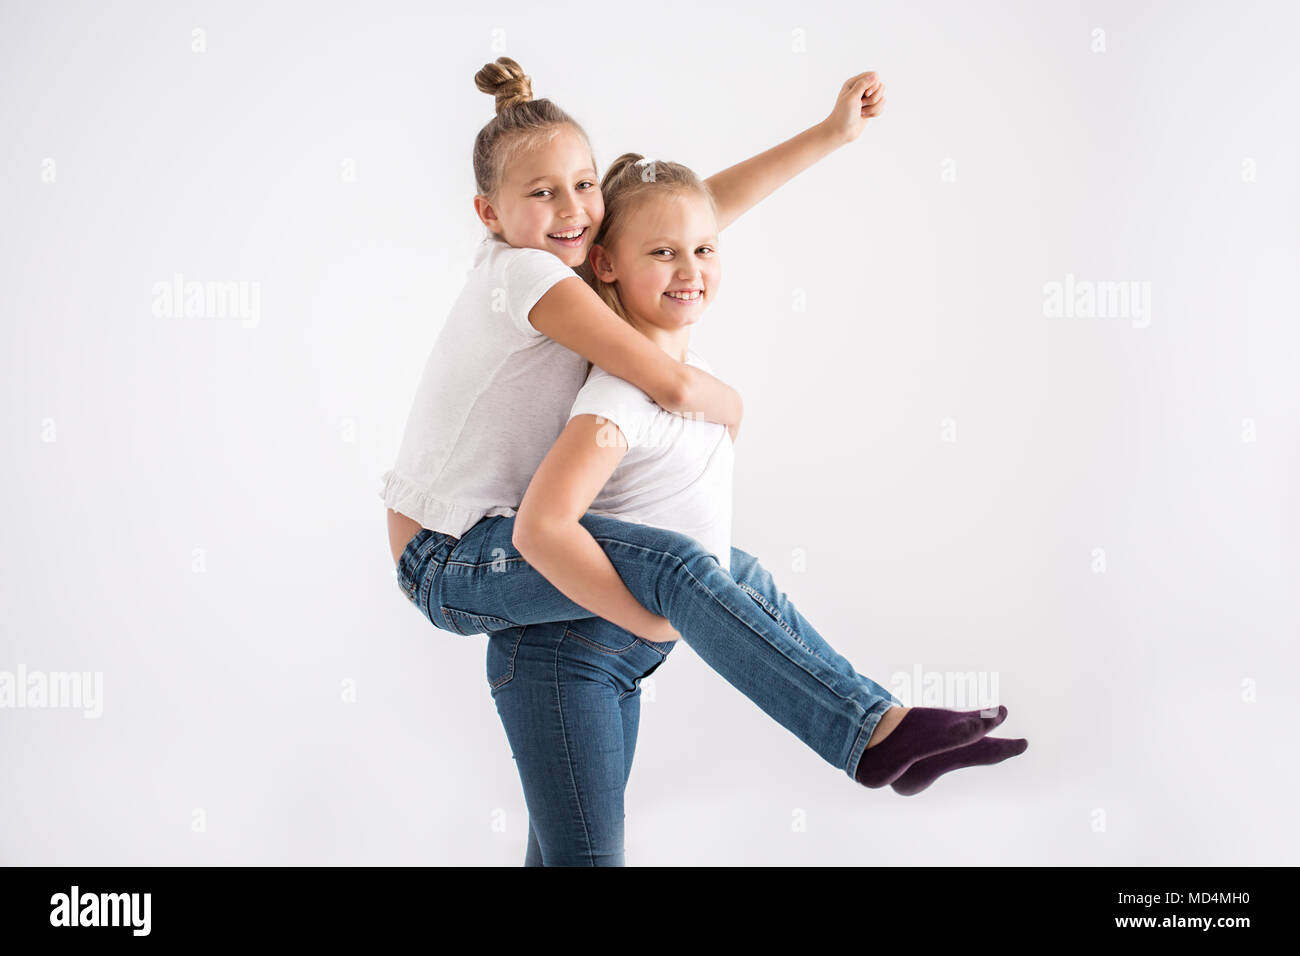 Portrait of a young, happy girl having fun, enjoying a piggyback ride on her sister's back against a white background - Stock Image